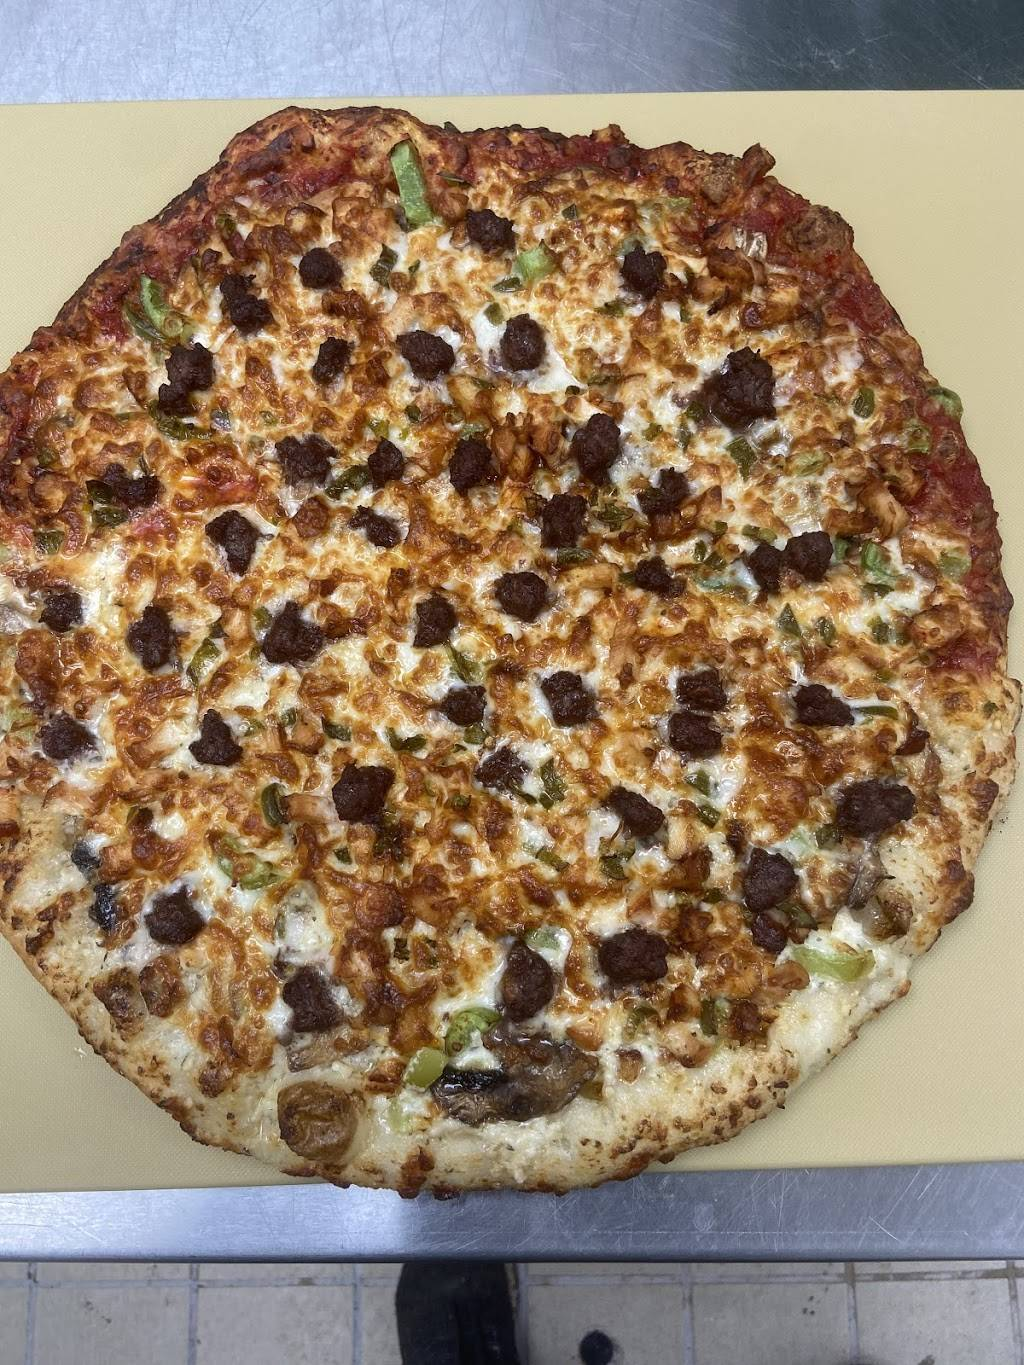 Pizza Pizza California Style pizza | restaurant | 2956 W Kessler Blvd N Dr, Indianapolis, IN 46222, USA | 3174264050 OR +1 317-426-4050